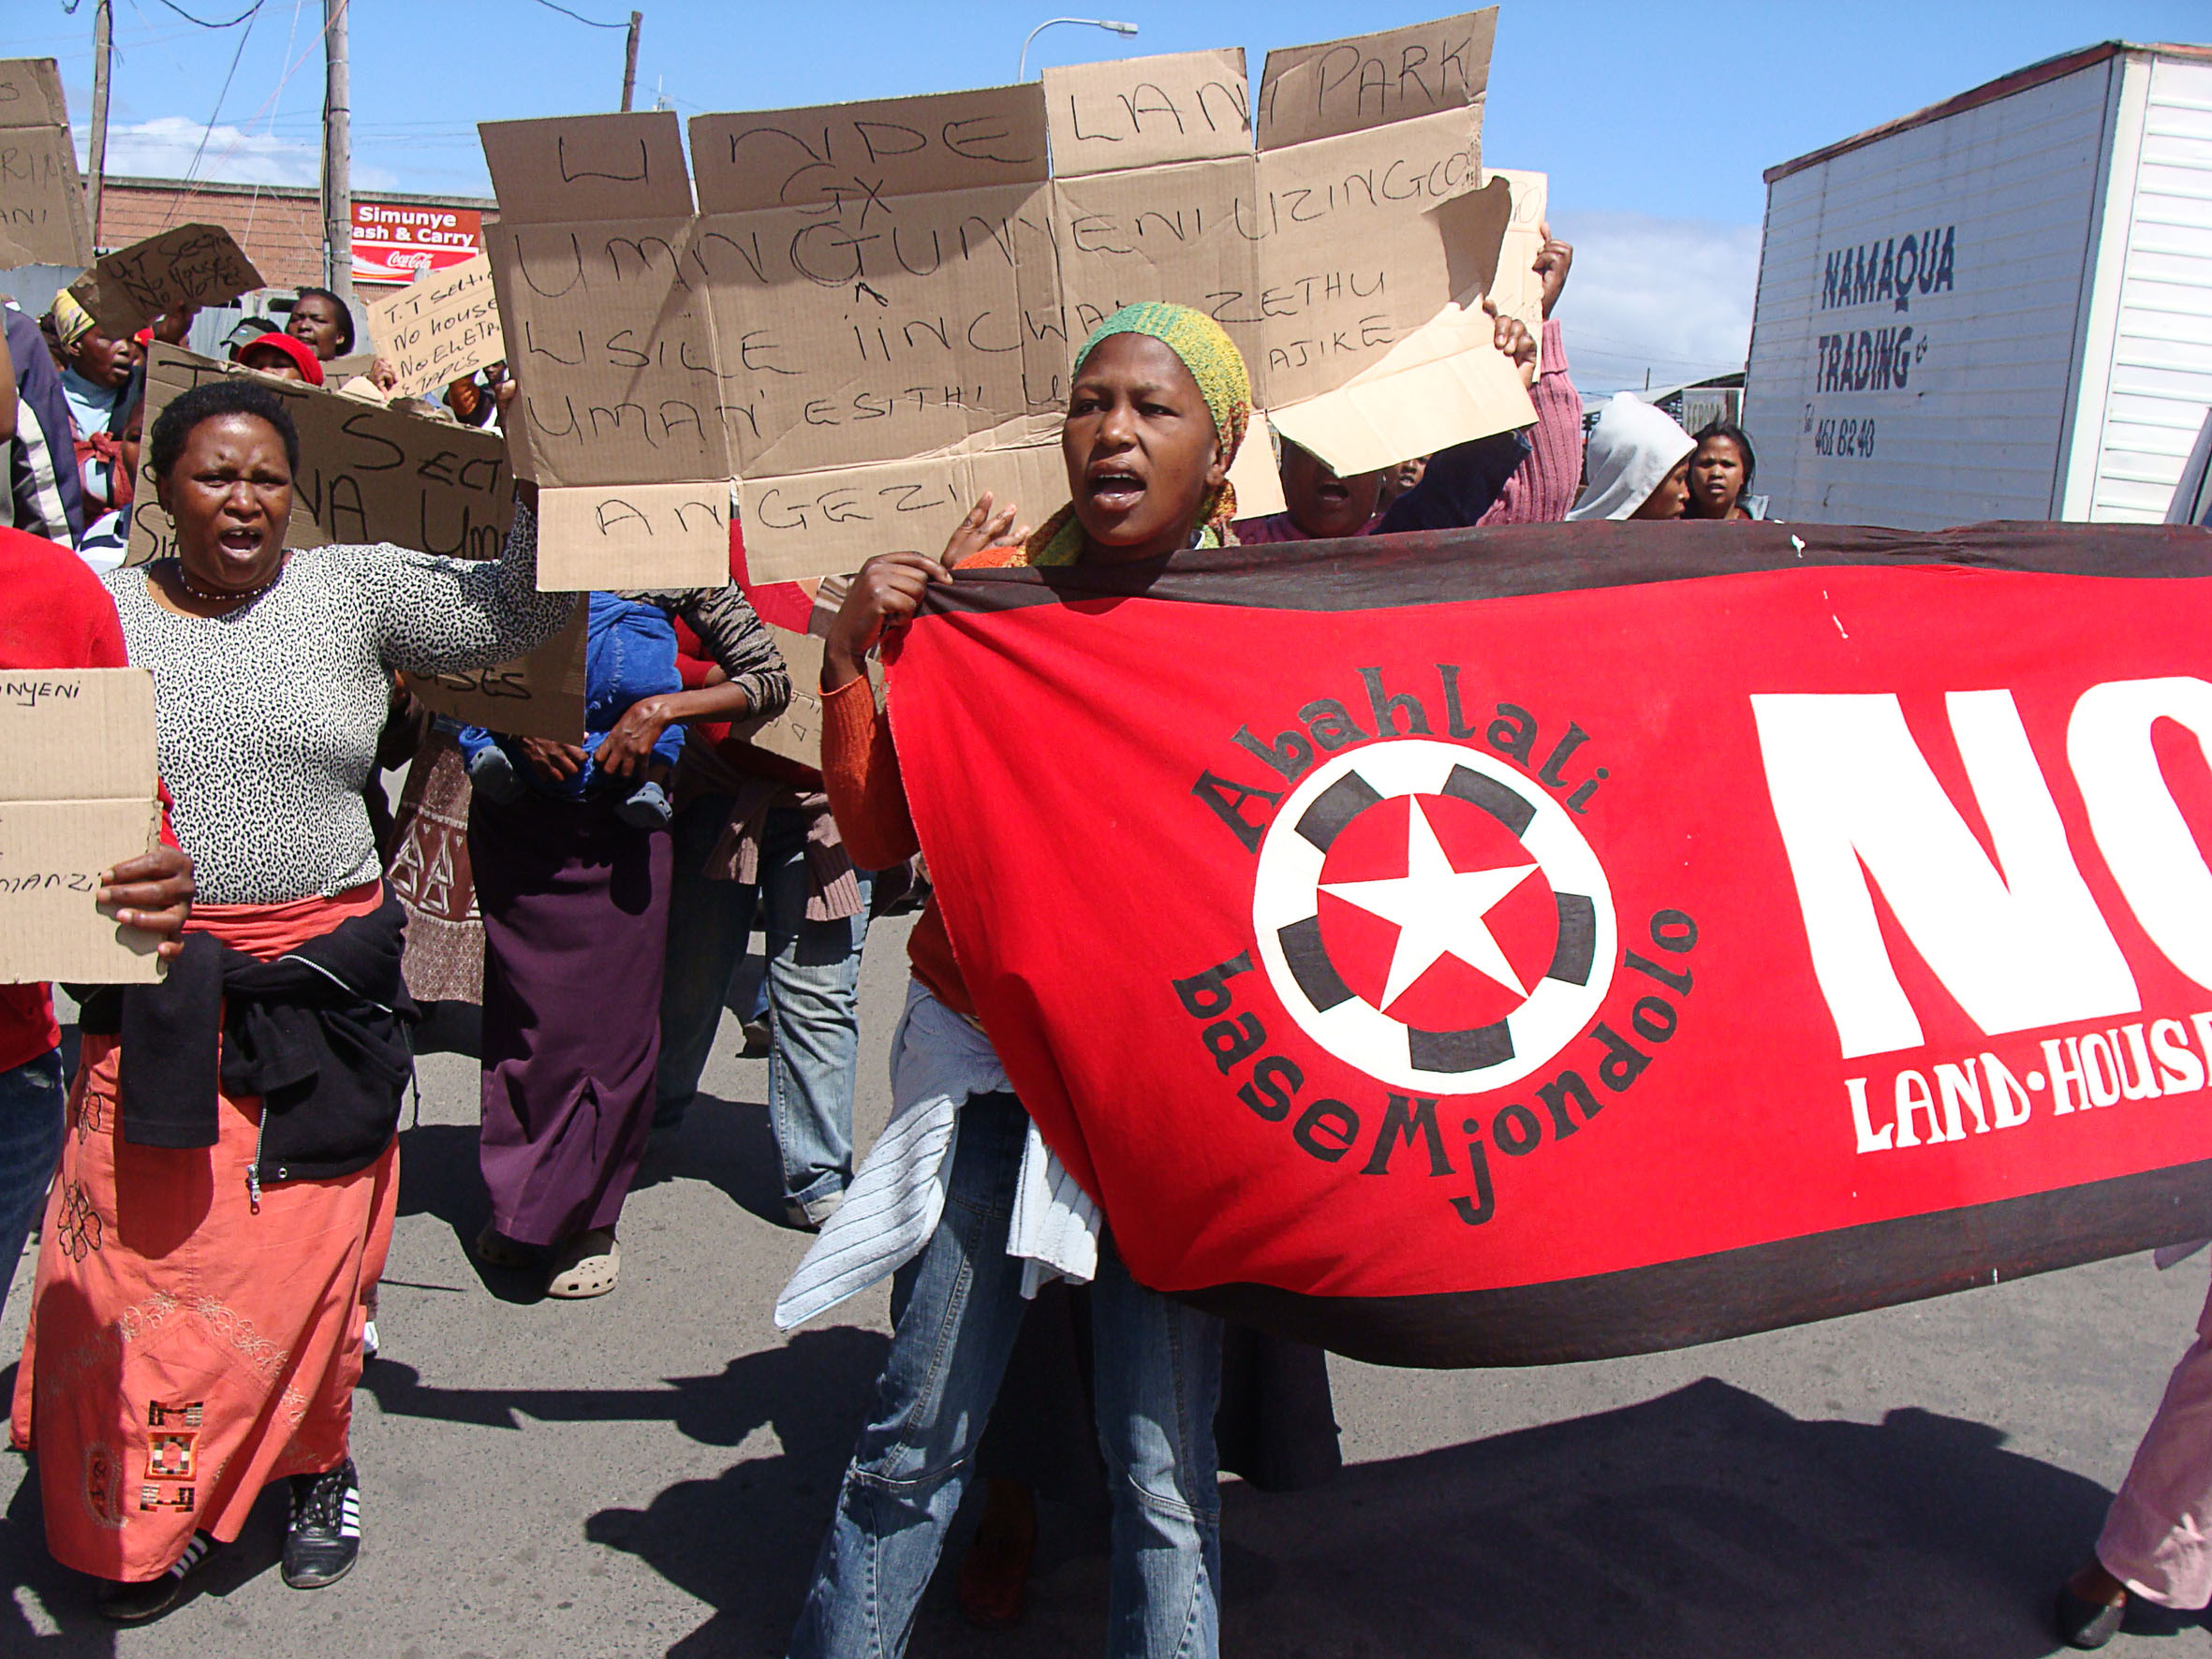 About 300 shack dwellers marched to the Ilitha Park local government offices on Wednesday to demand security of tenure and service delivery. Photo: Brenda Nkuna/WCN